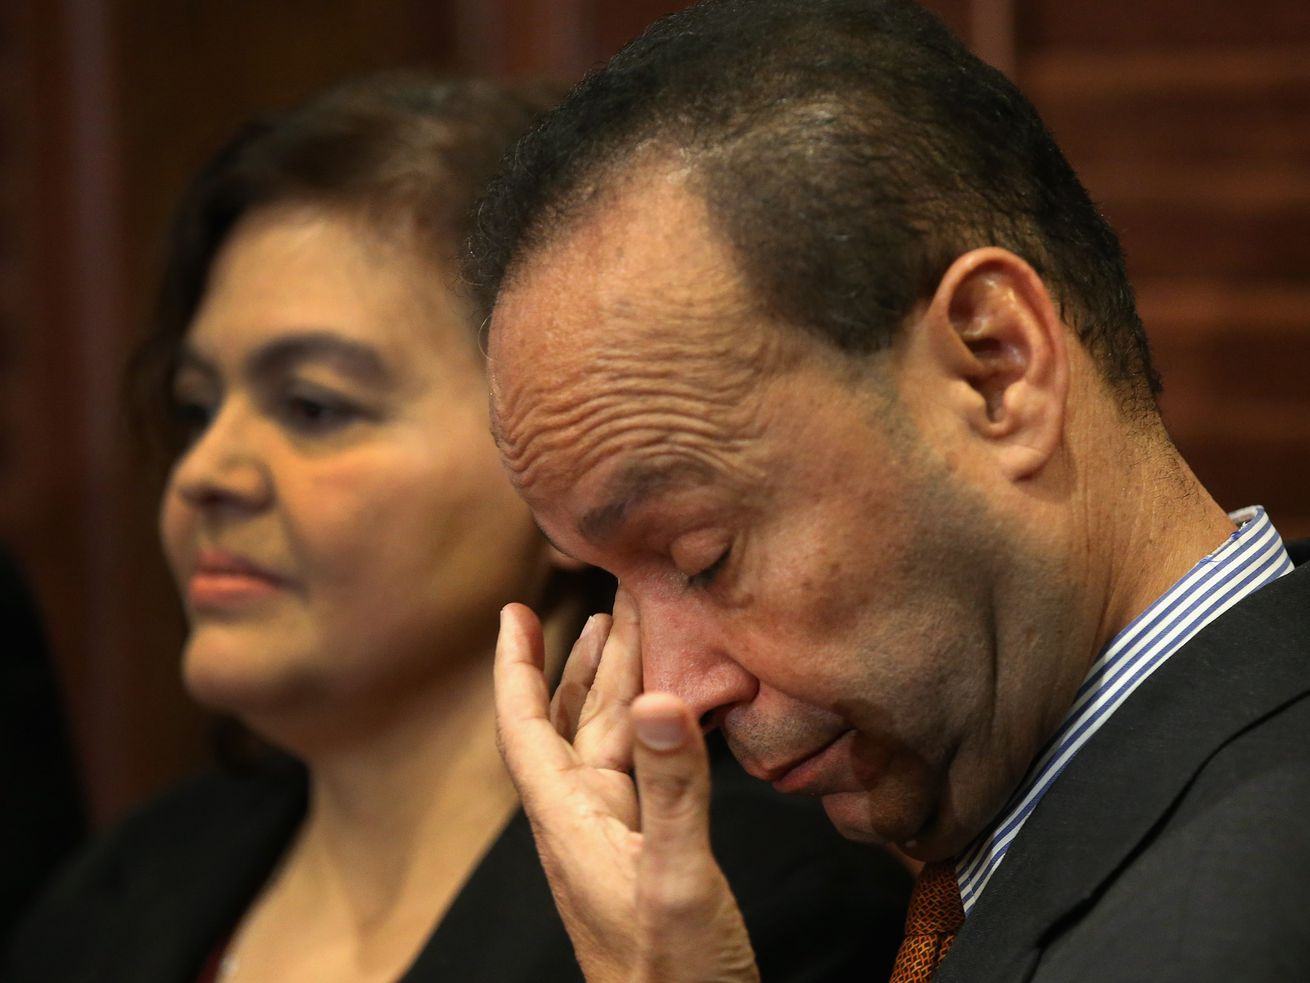 CHICAGO, IL - NOVEMBER 28: U.S. Representative Luis Gutiérrez (D-IL) wipes away a tear as he announces he will retire from congress at the end of his current term during a press conference on November 28, 2017 in Chicago, Illinois. Gutierrez has represented Illinois' 4th congressional district since 1993. (Photo by Scott Olson/Getty Images) ORG XMIT: 775084372